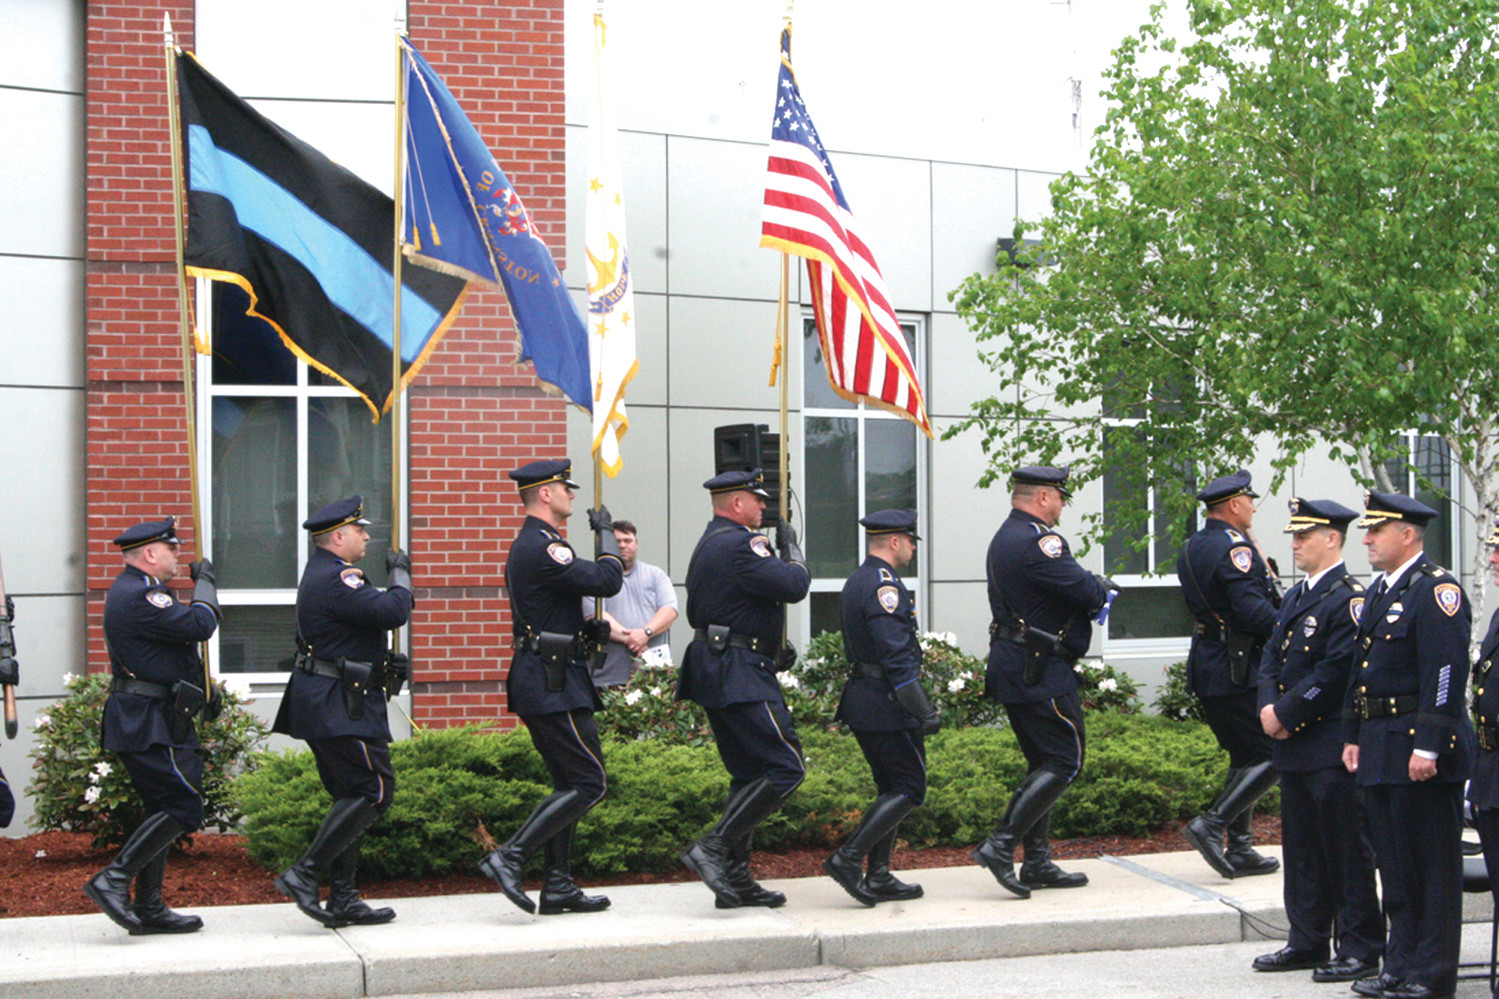 HONORING THE FALLEN: Cranston Police Officers march with the flags outside of the police station on Garfield Avenue Tuesday morning to honor fallen police officers from the city, state, and country.